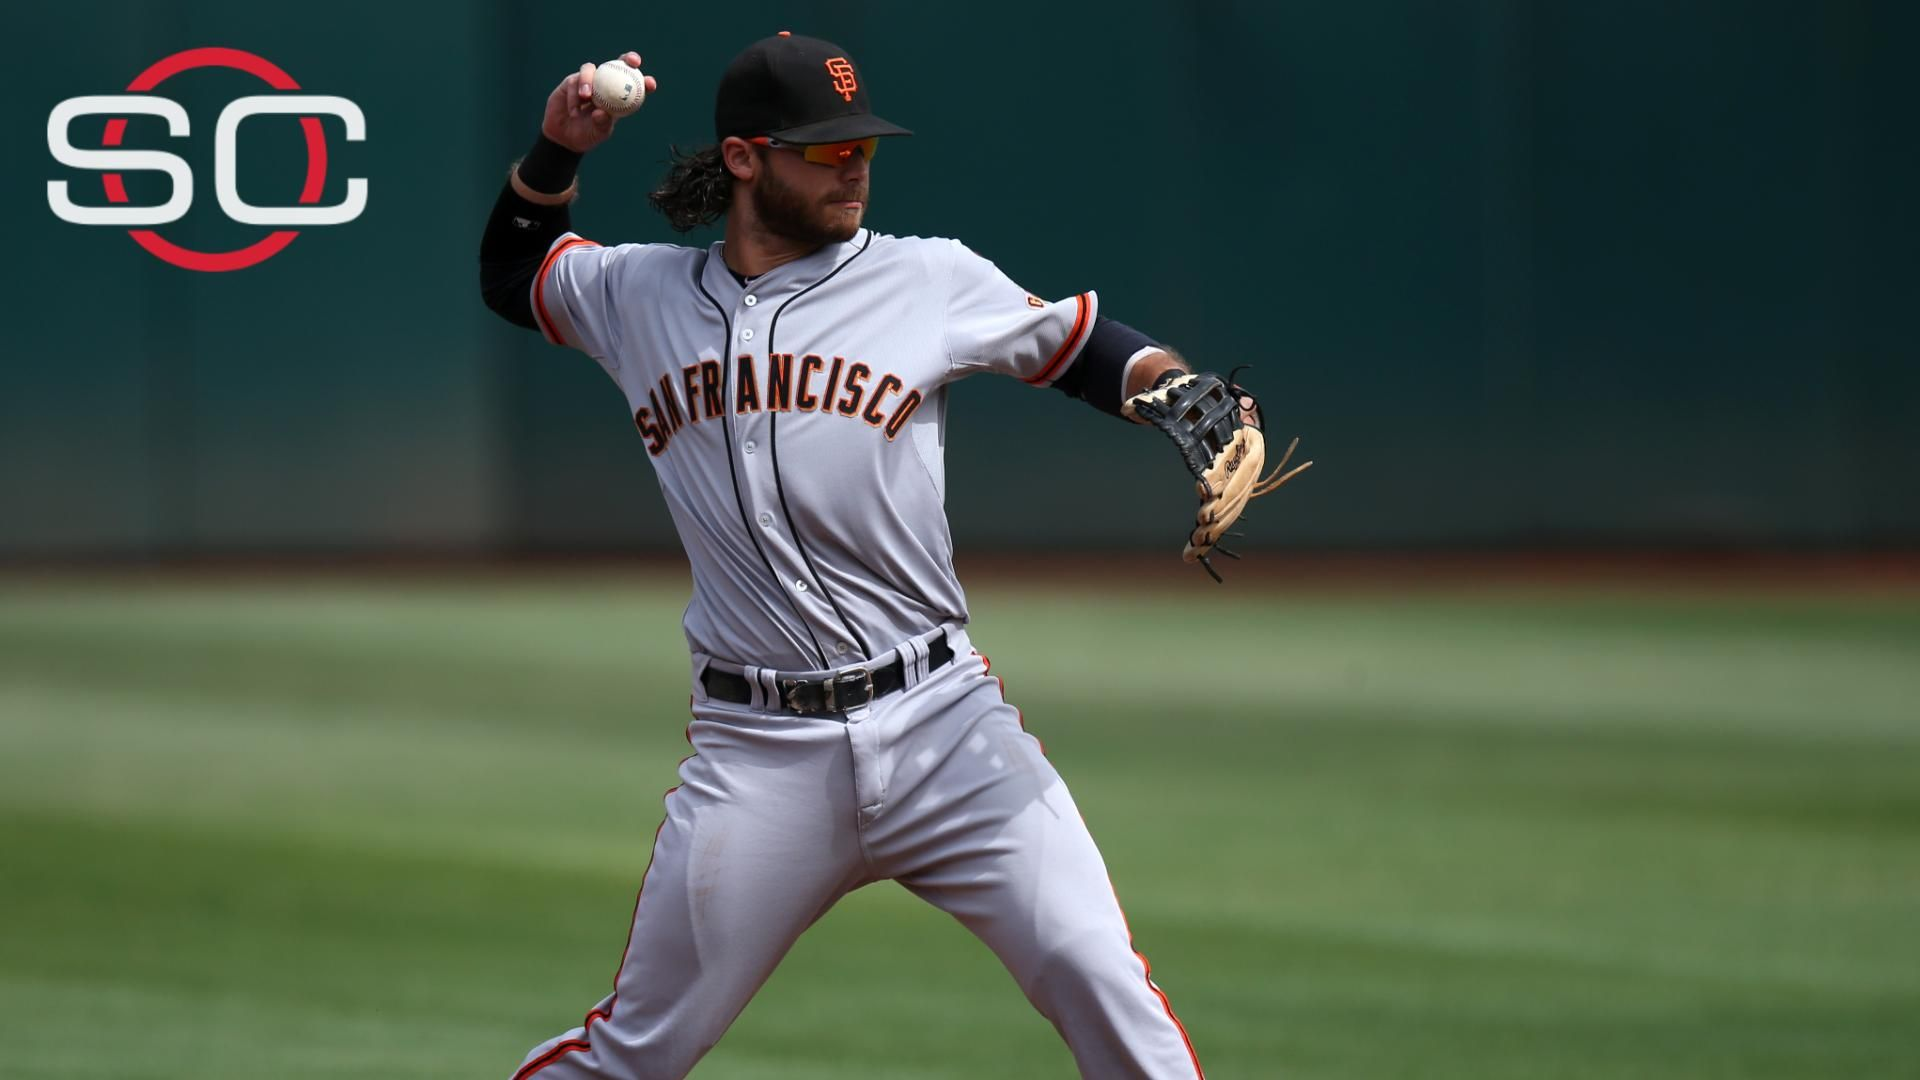 Giants sign Brandon Crawford to new deal worth $75M